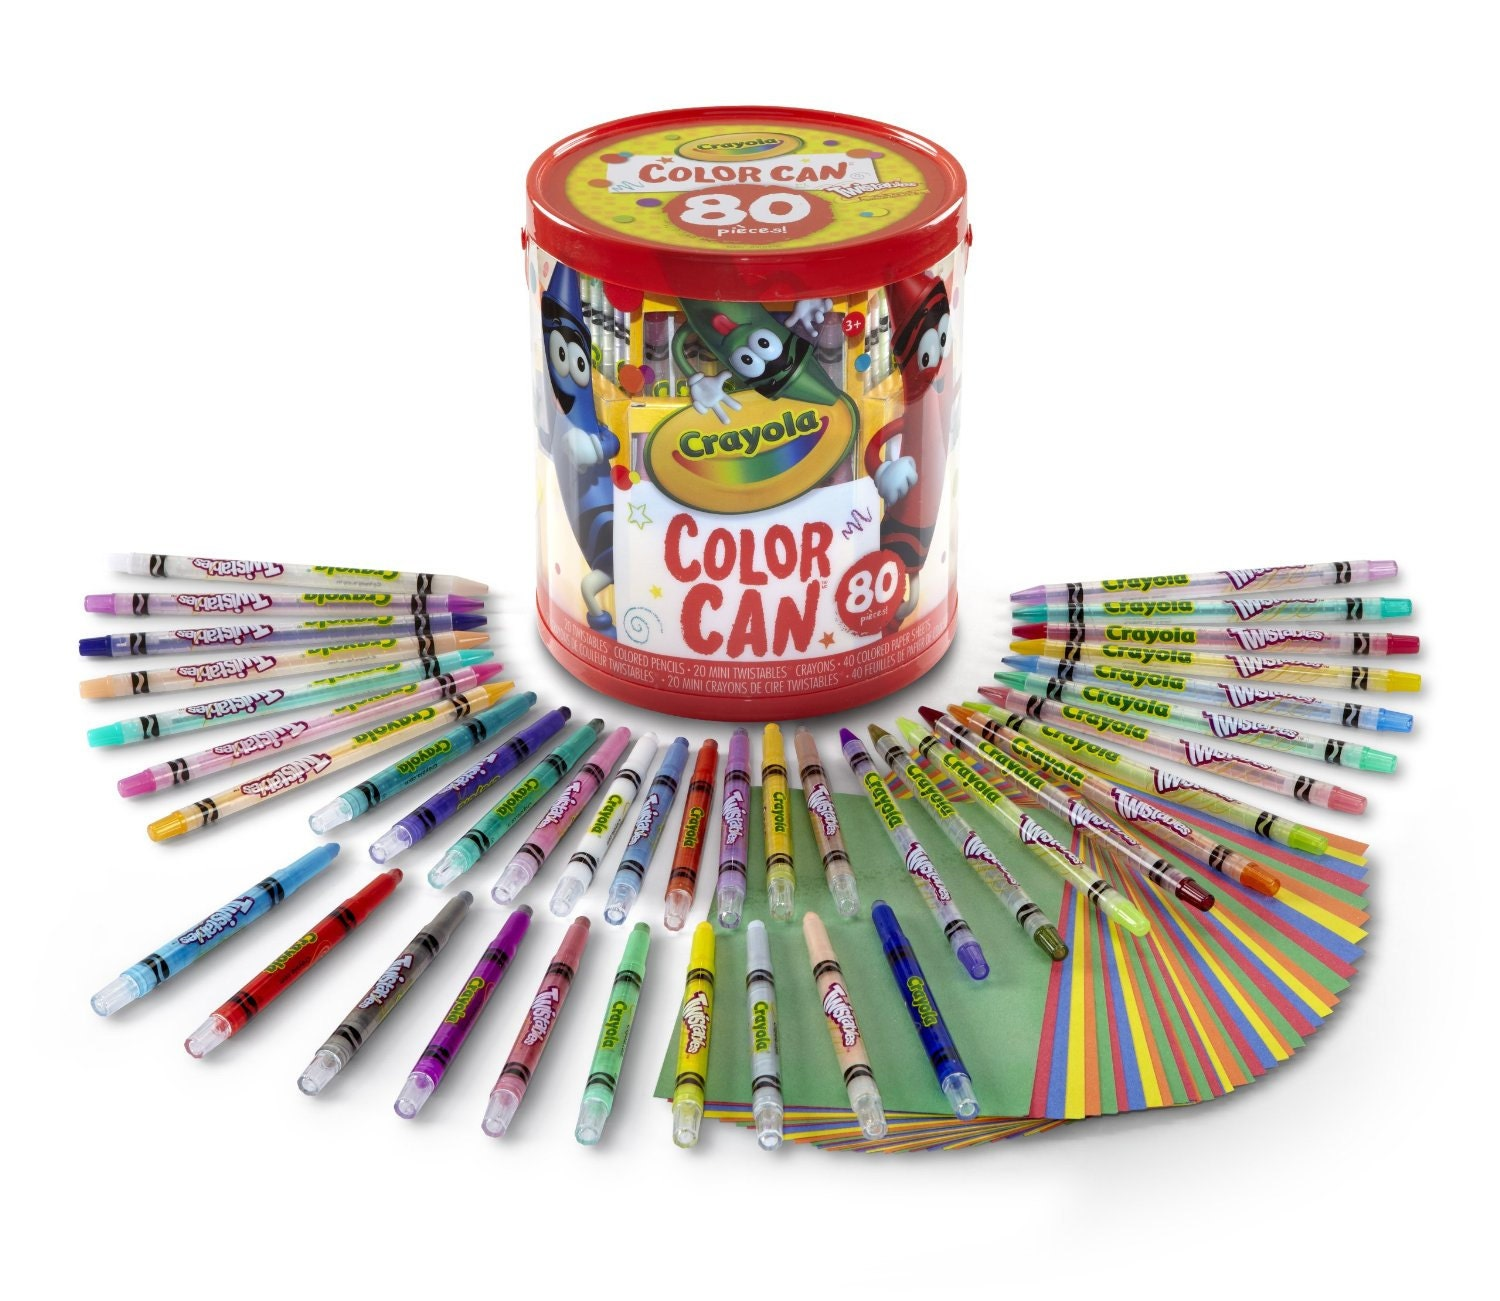 20 Crayola Twistables Colored Pencils Mini Crayons